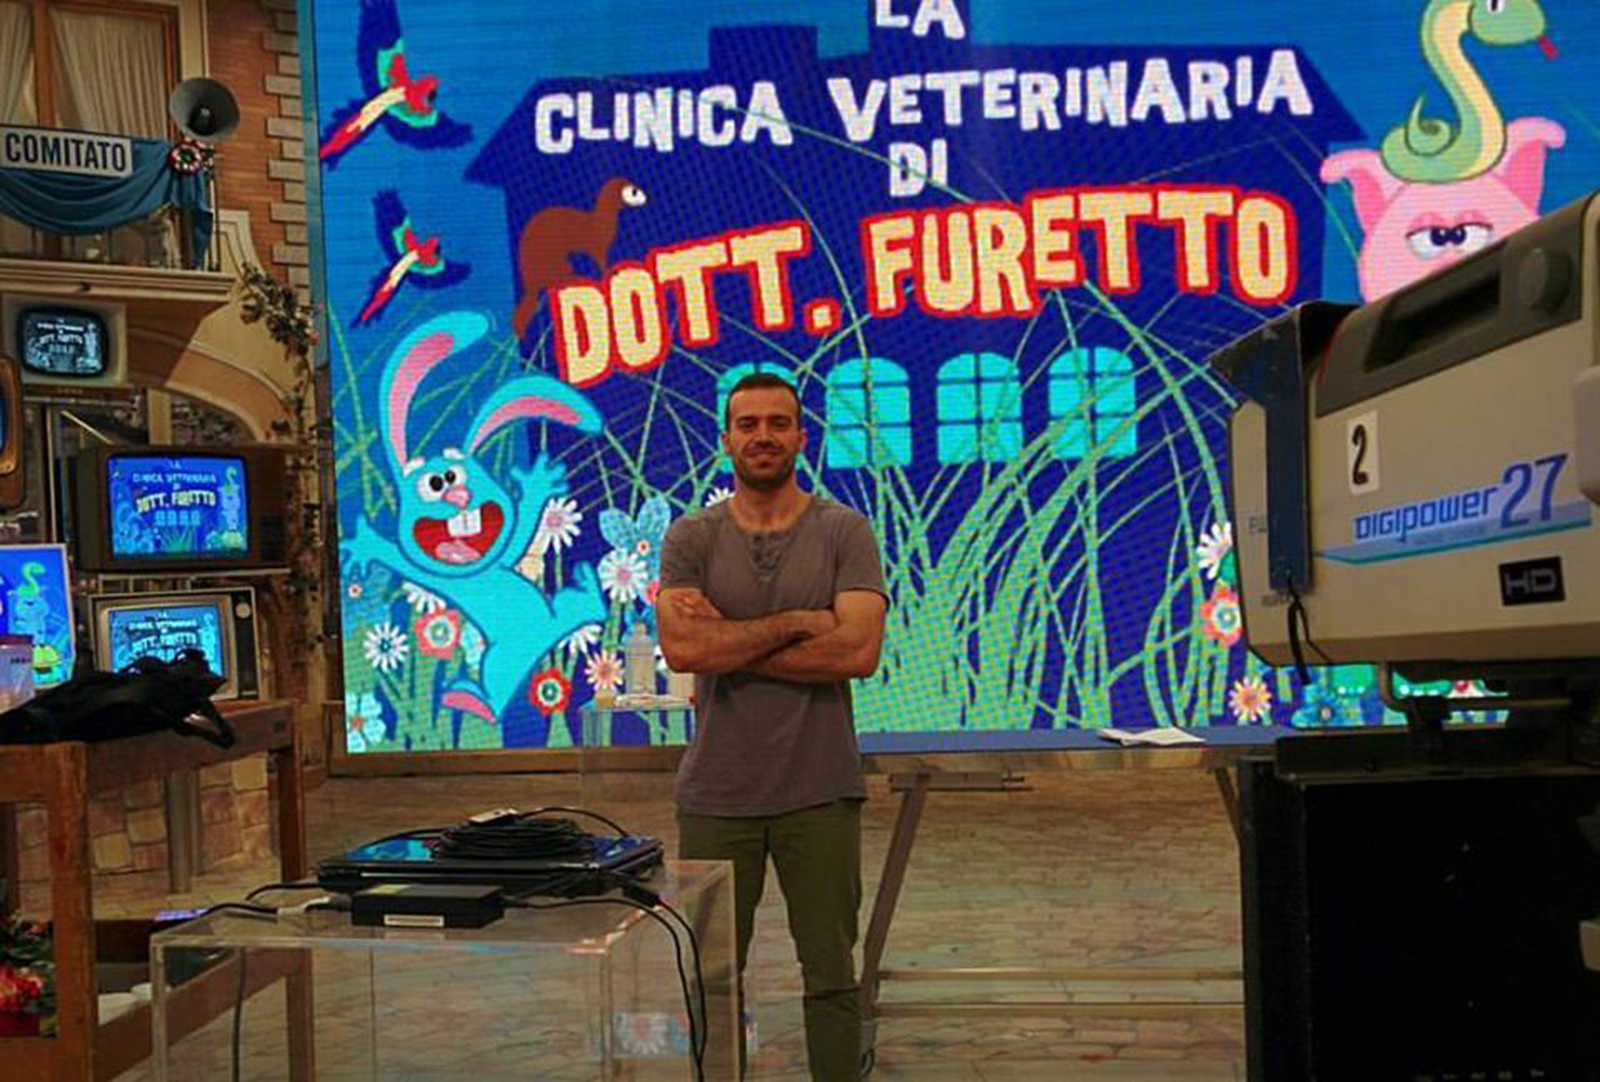 Veterinario tv